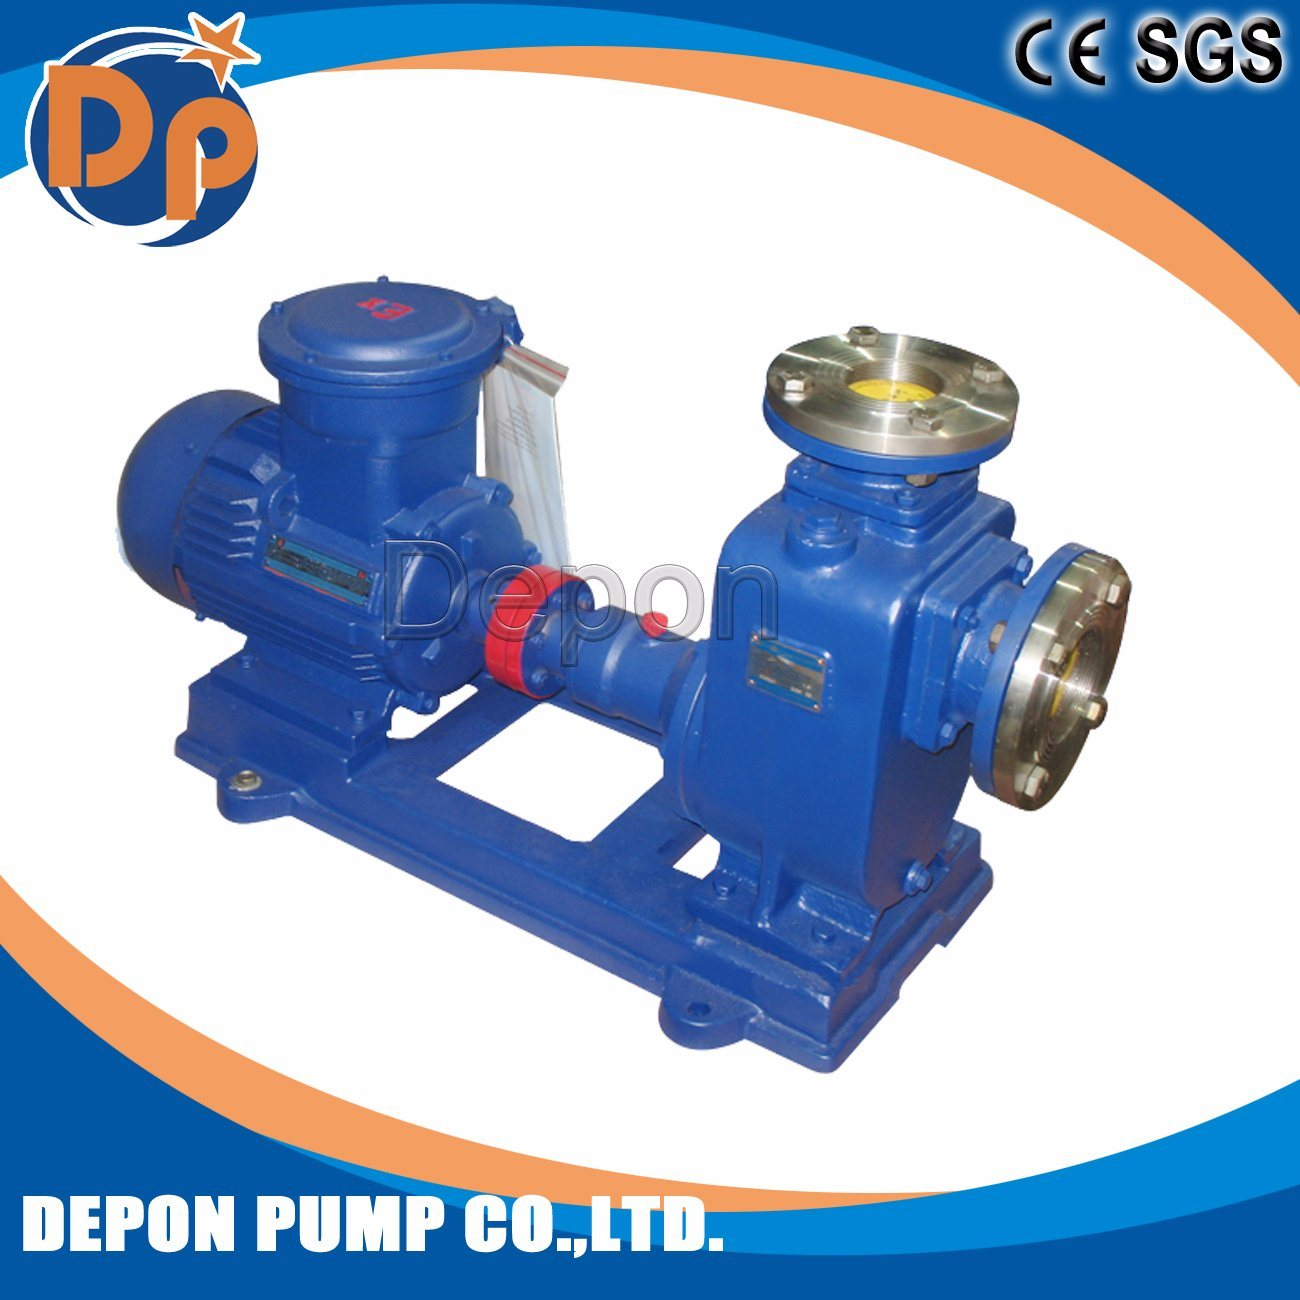 6 Inch Self Priming Non-Clogging Sewage Pump Trash Pump pictures & photos